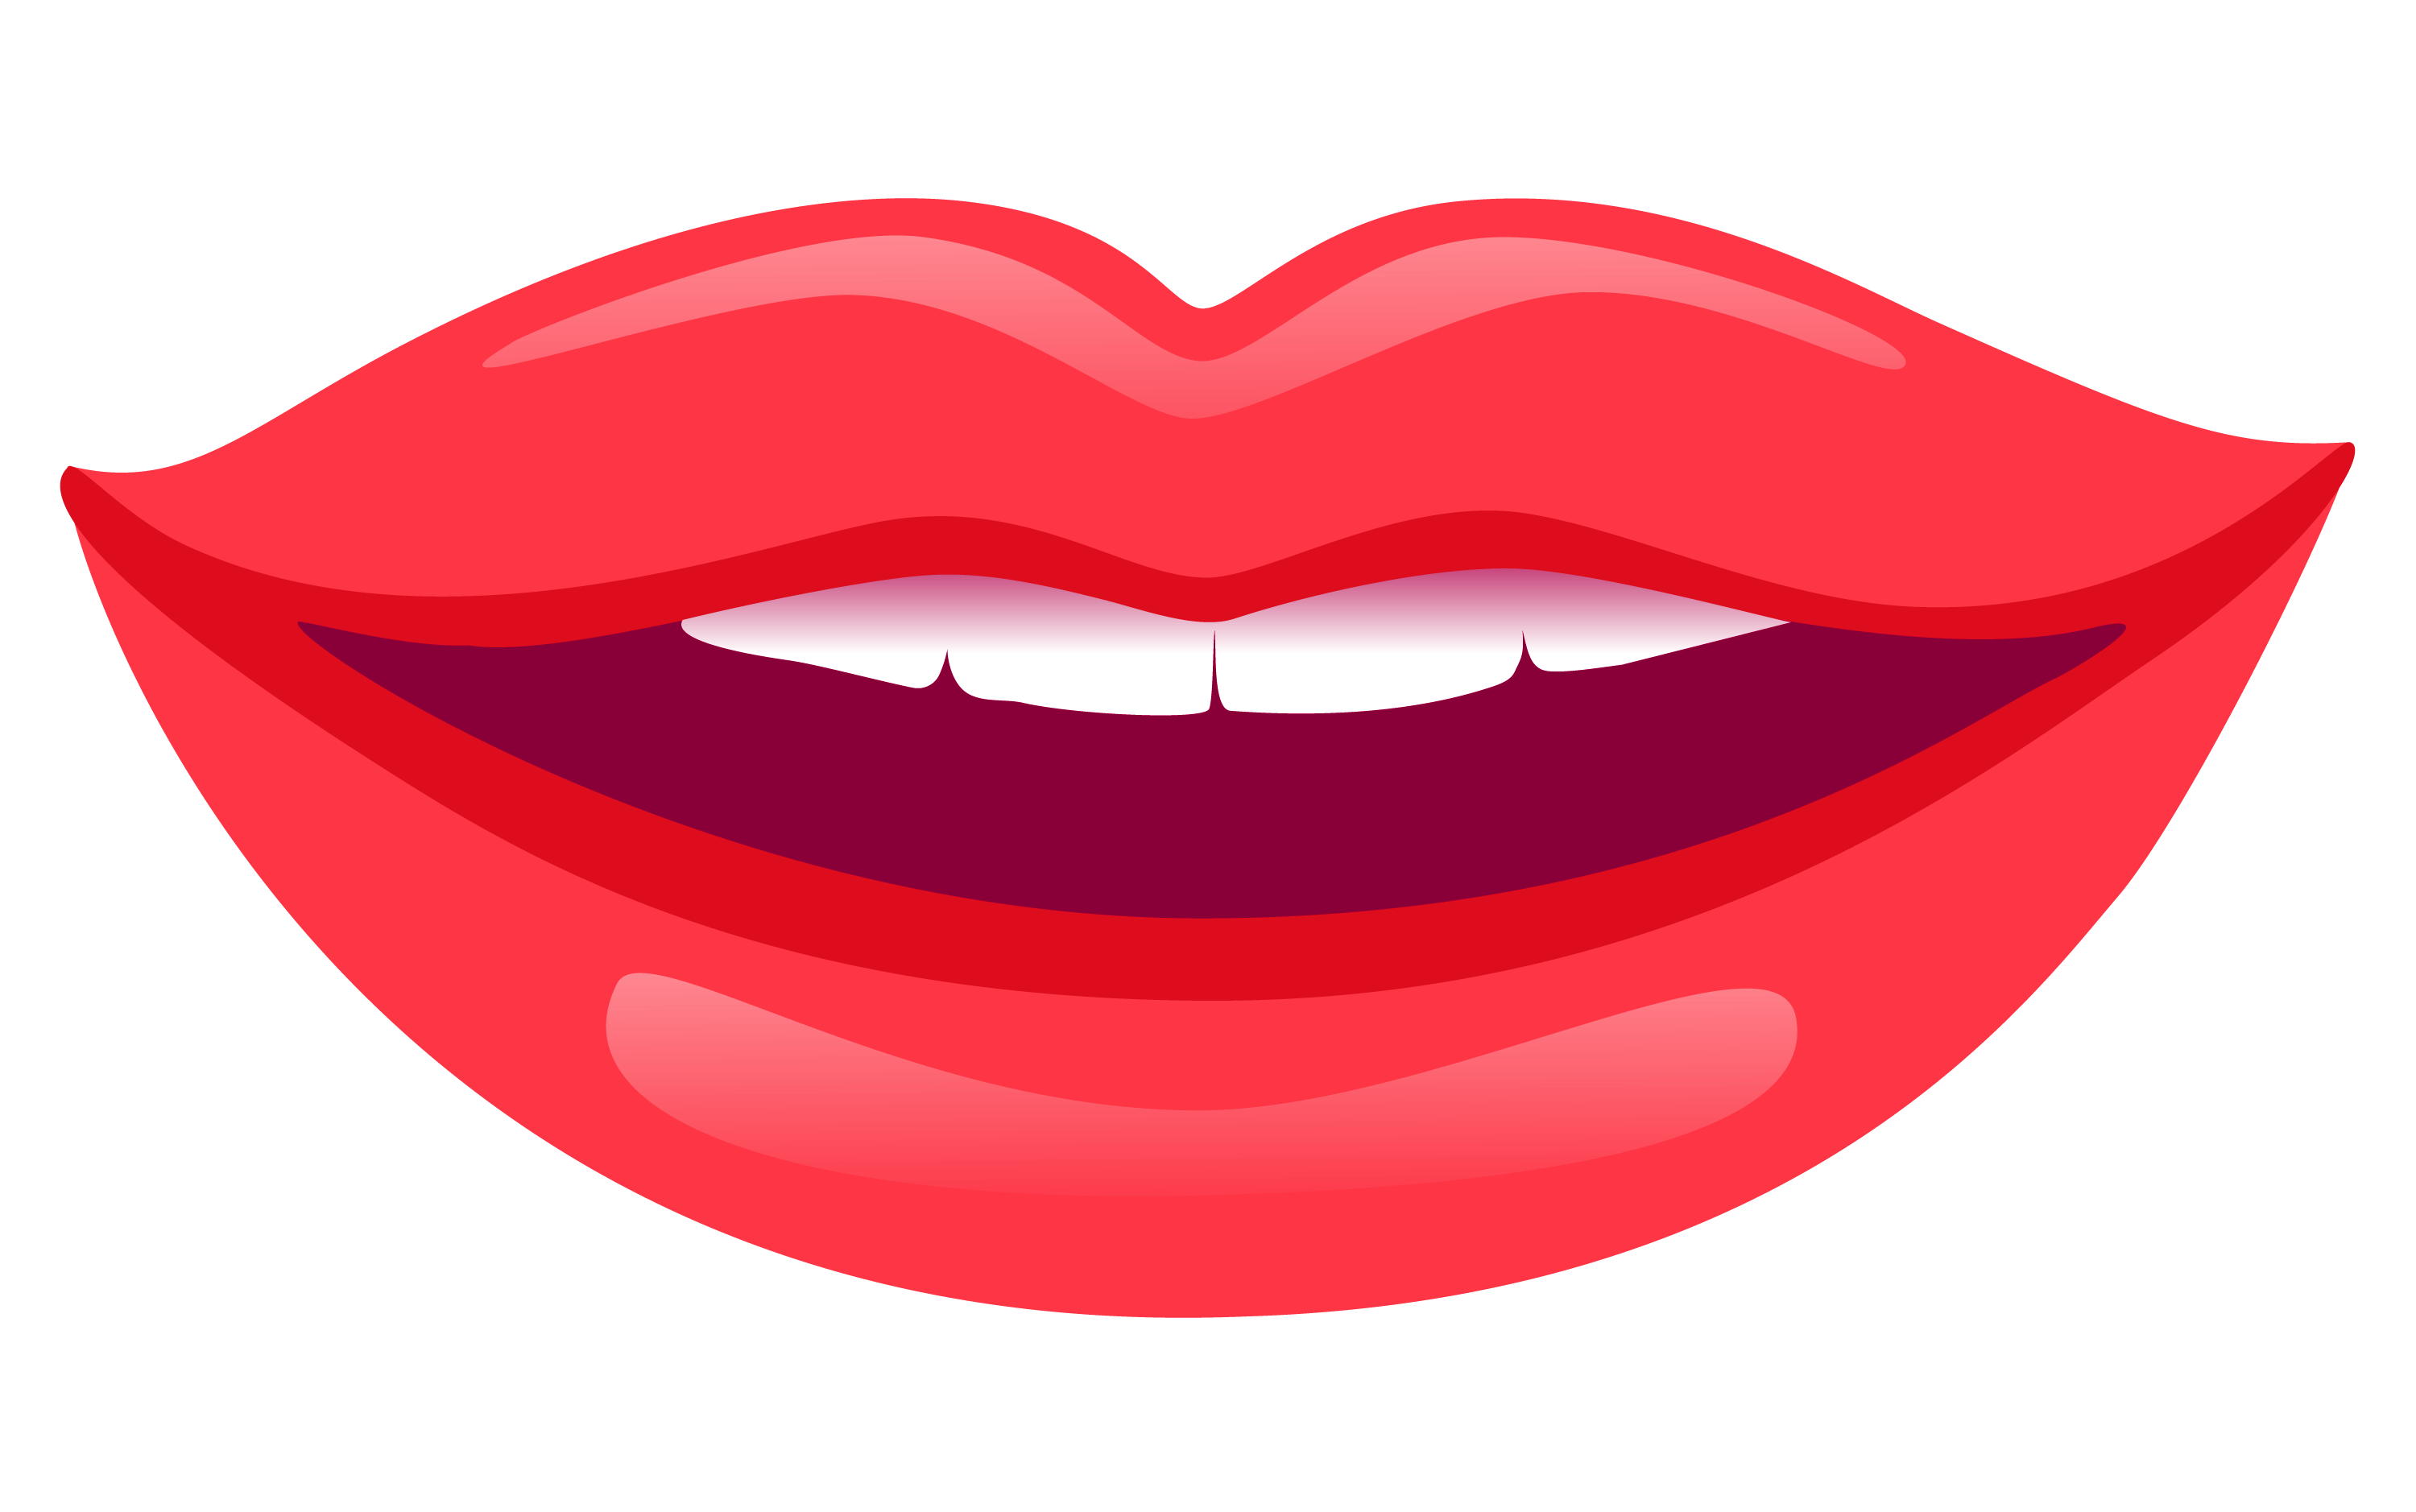 Clipart mouth ladies. Lips png transparent image